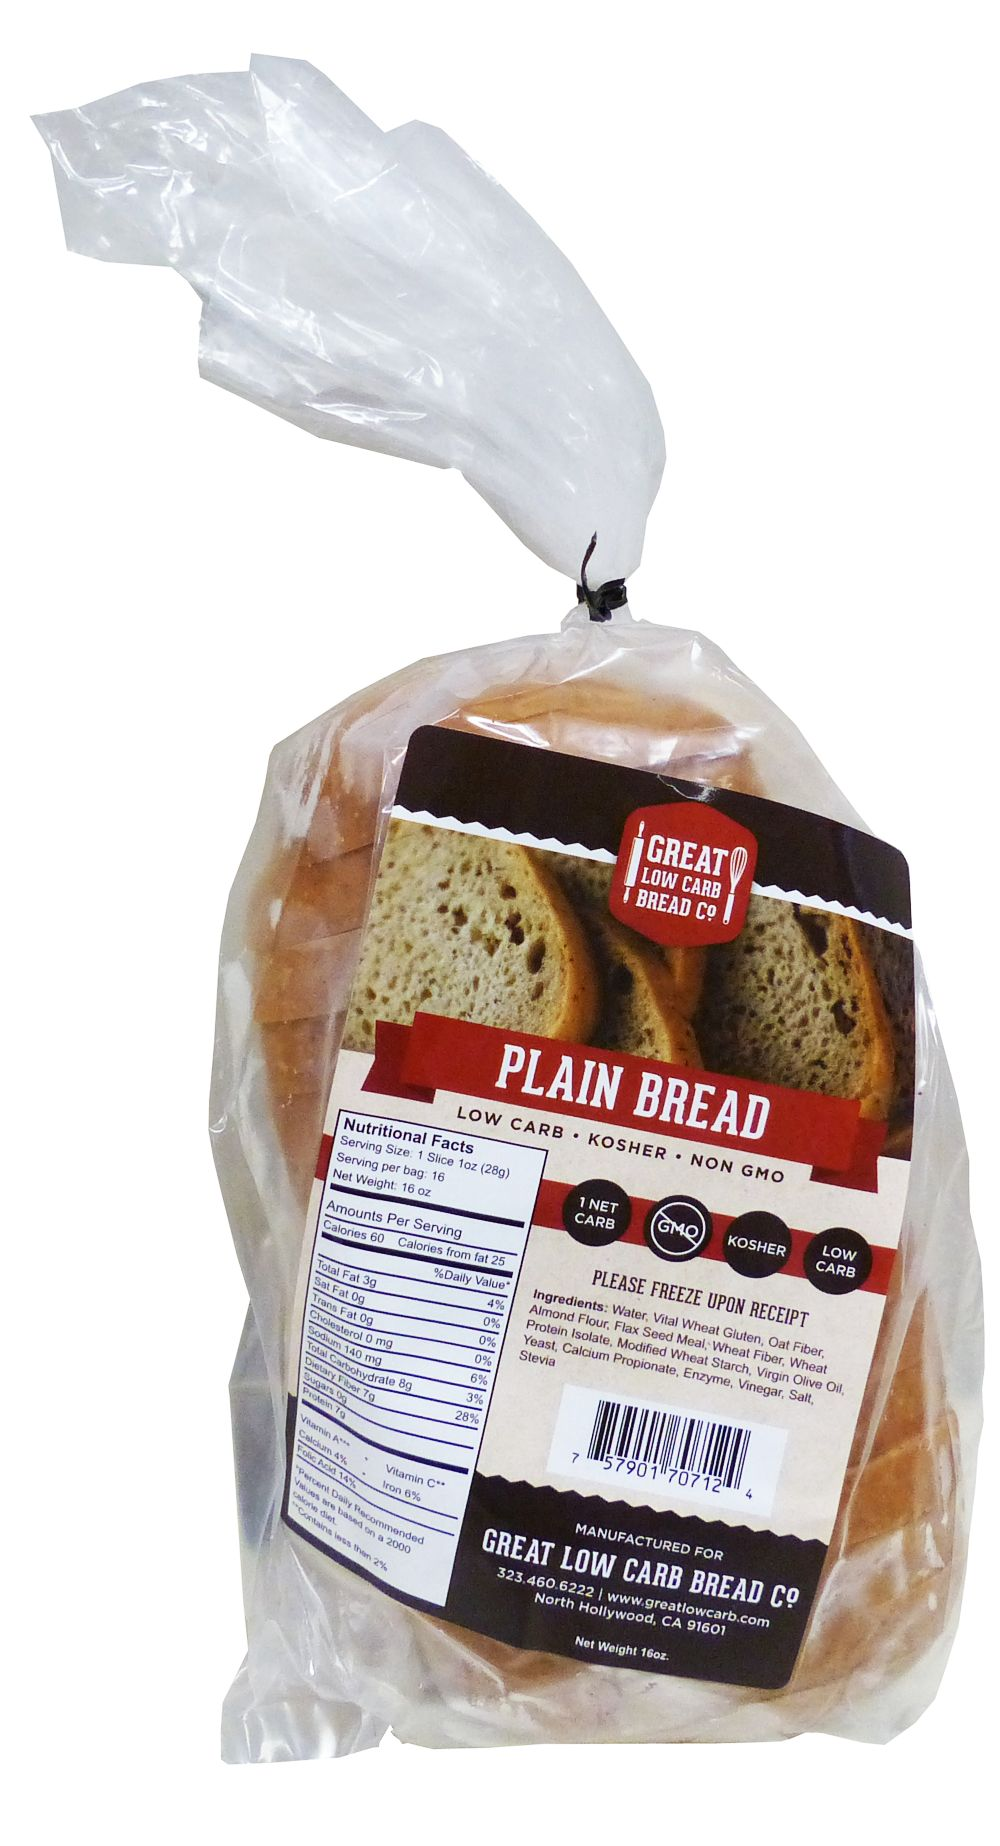 Great Low Carb Bread co. sliced bread